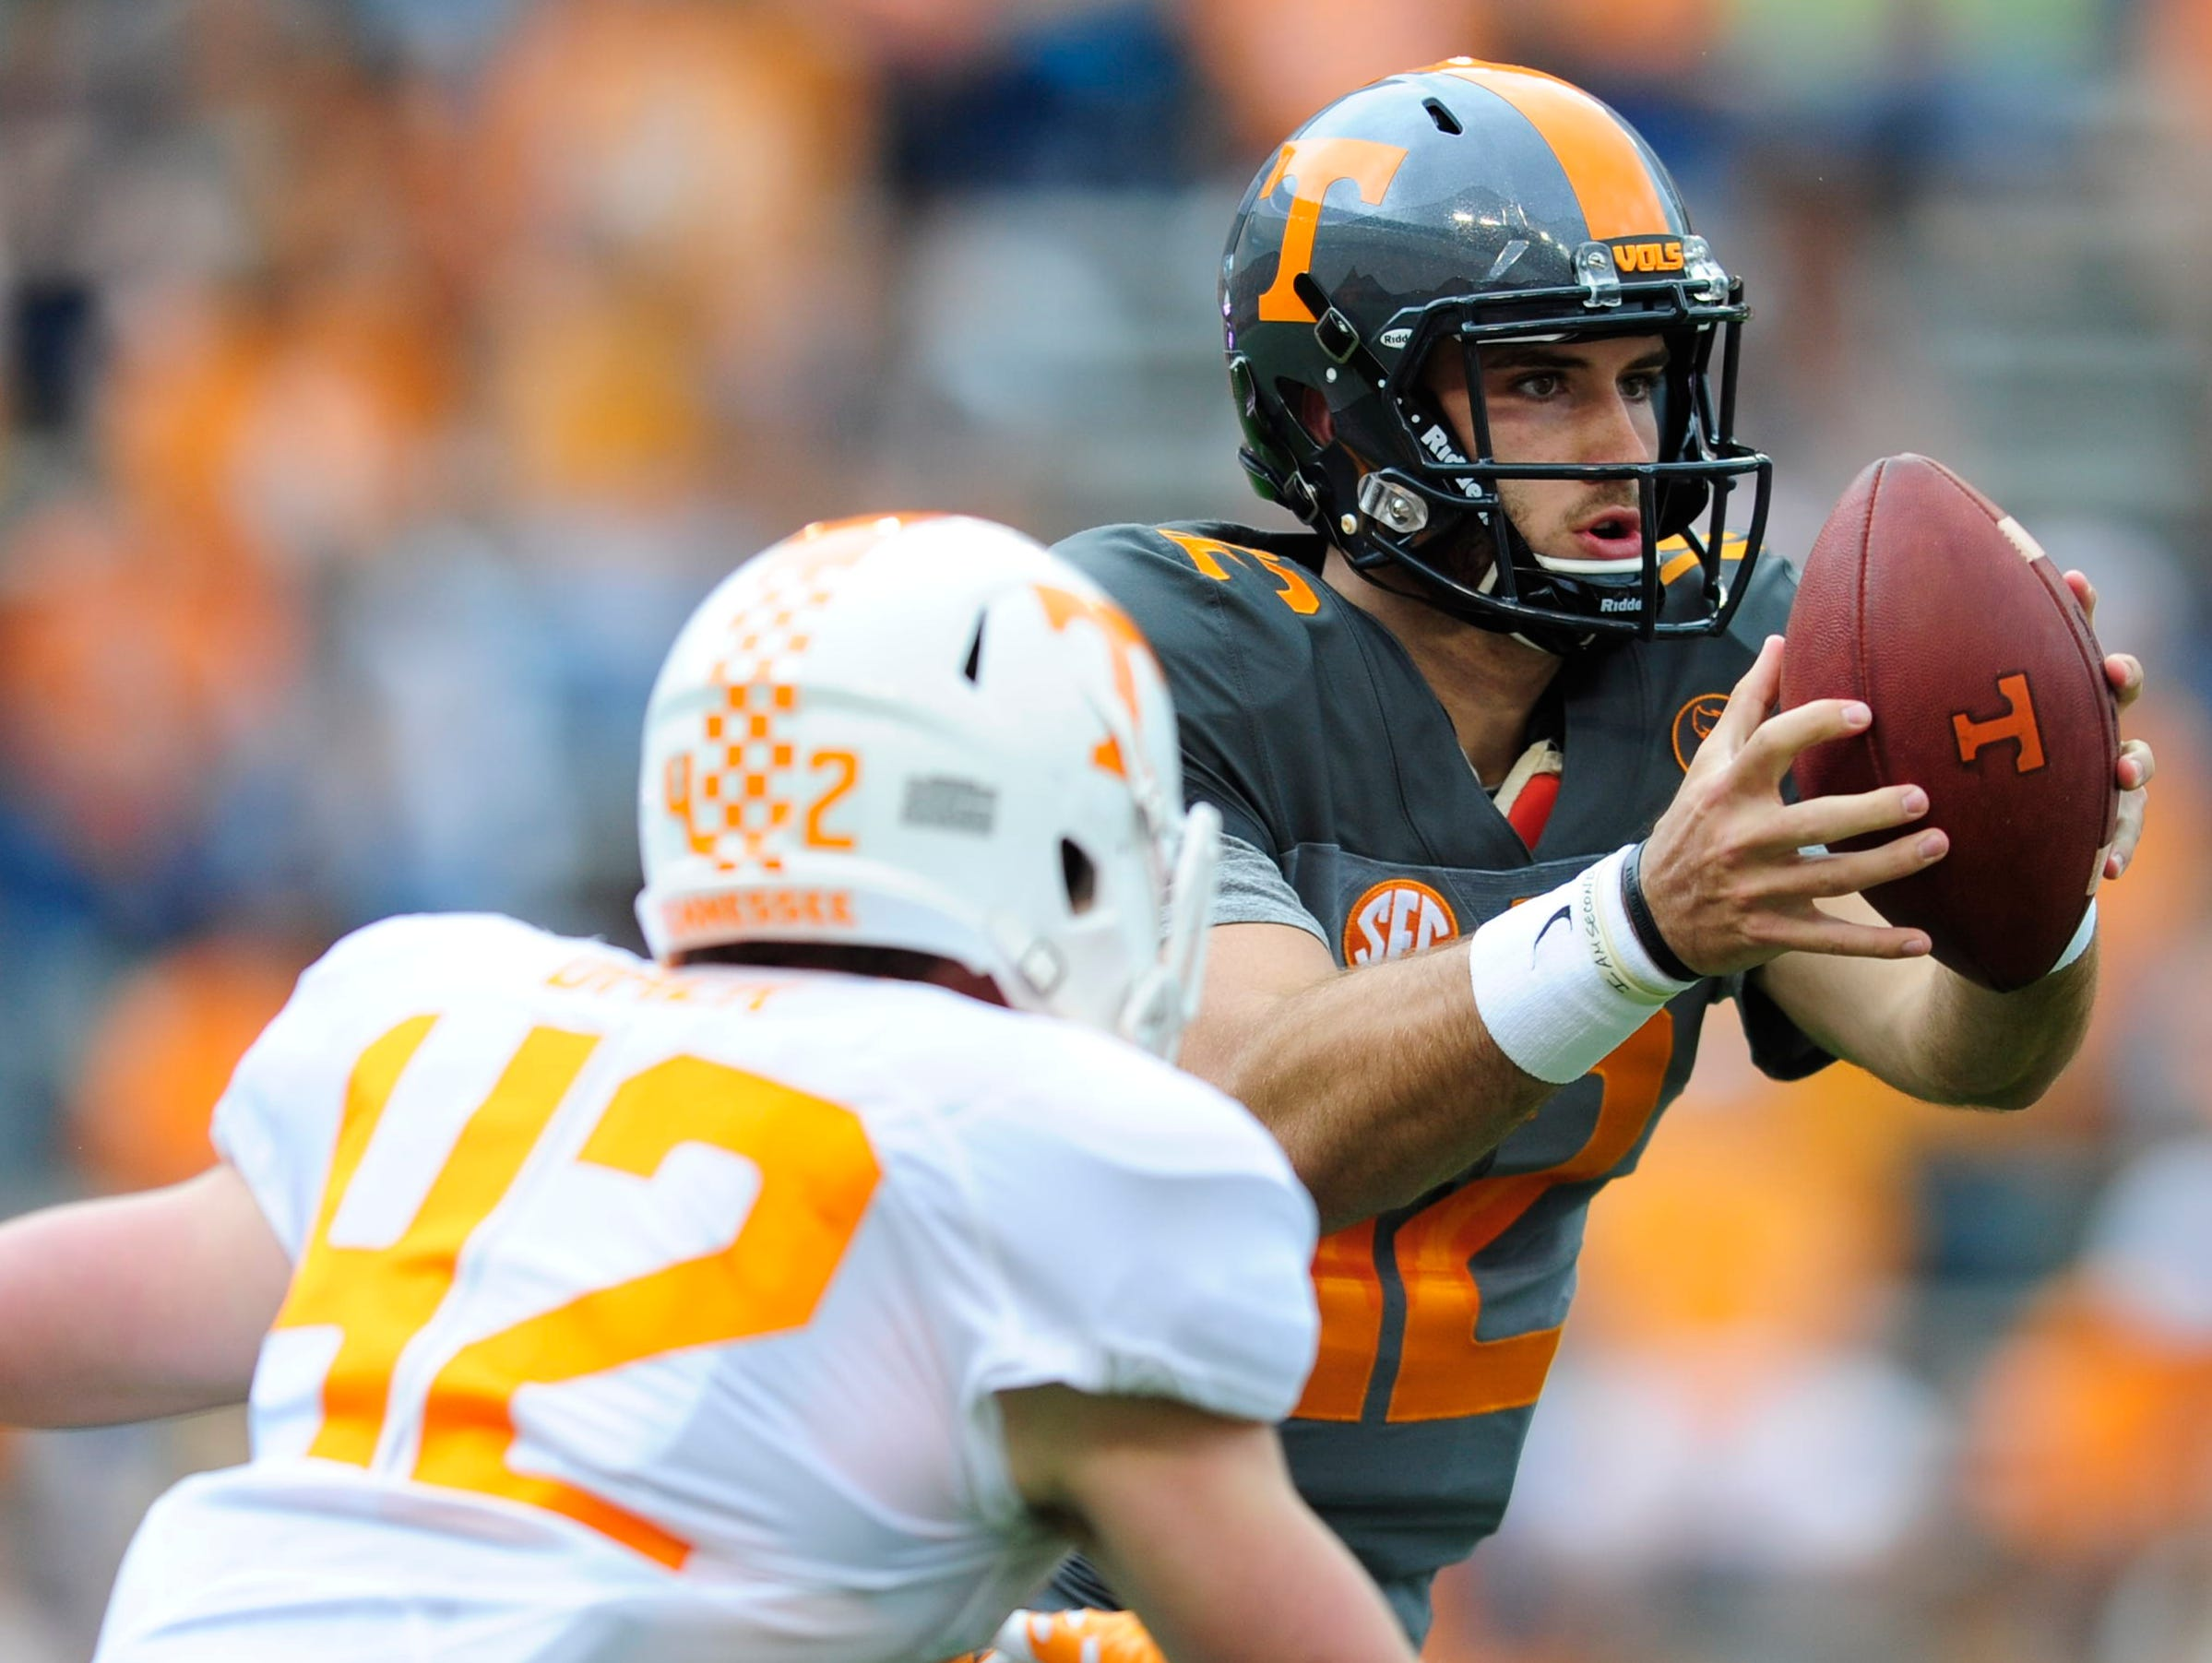 University of Tennessee's quarterback Quinten Dormady (12) looks to pass during the Orange & White Game at Neyland Stadium in Knoxville, Tennessee on Saturday, April 22, 2017.